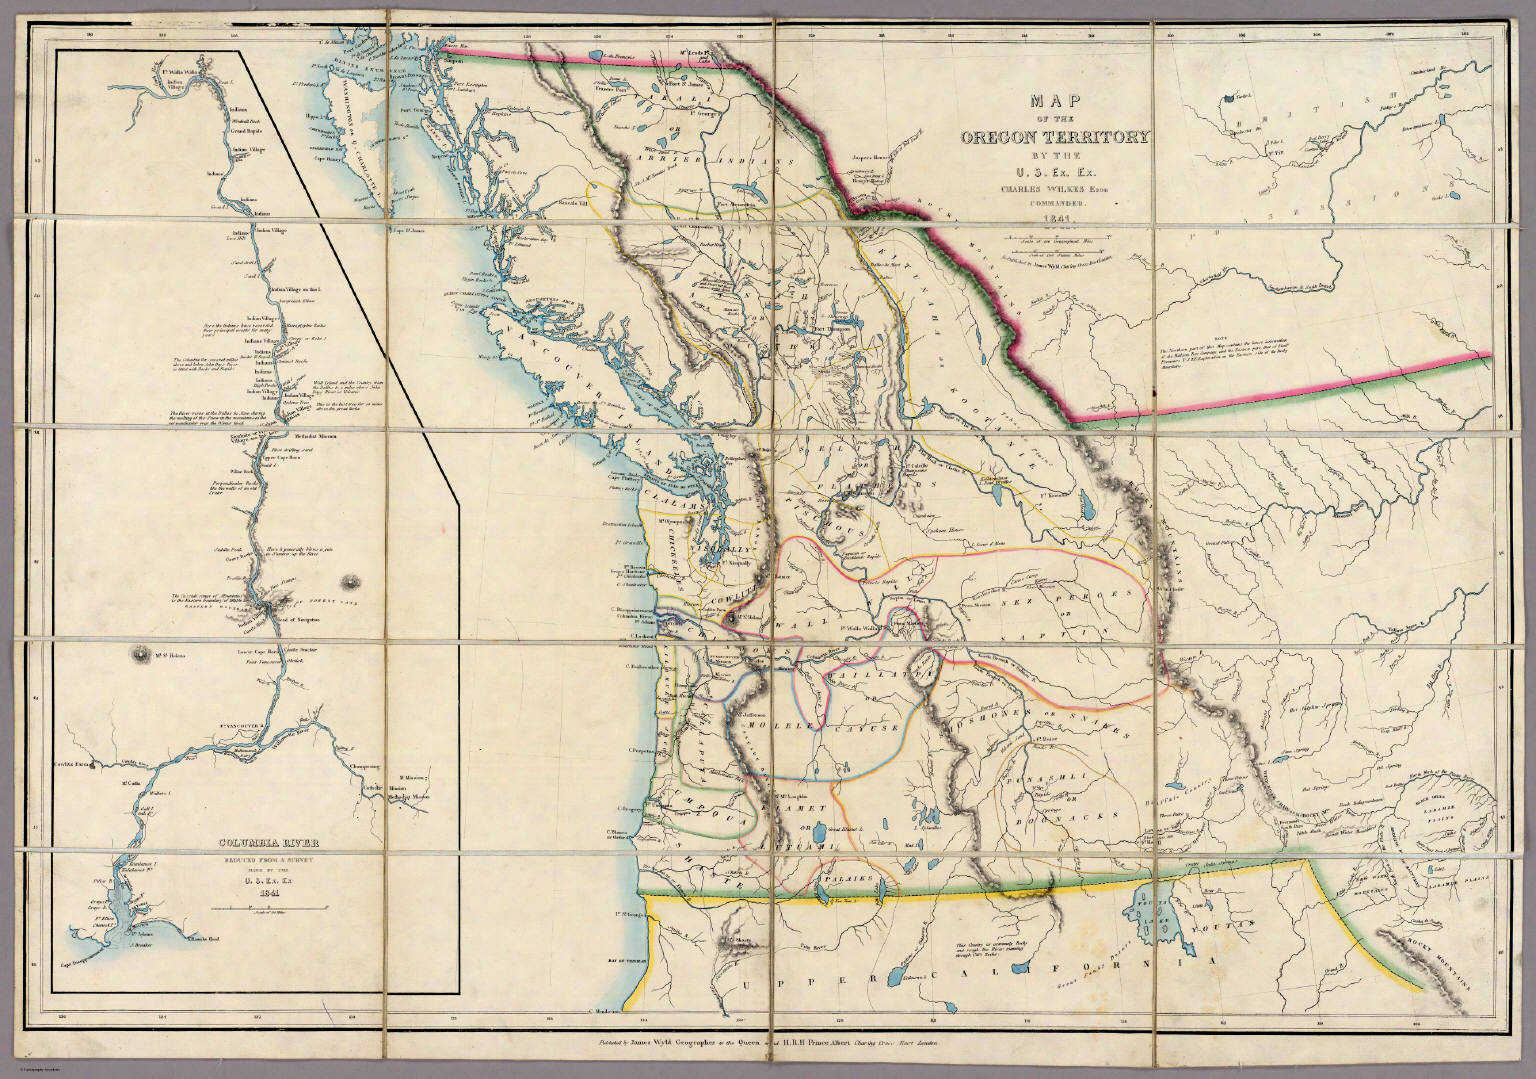 Map of the Oregon Territory - David Rumsey Historical Map ...